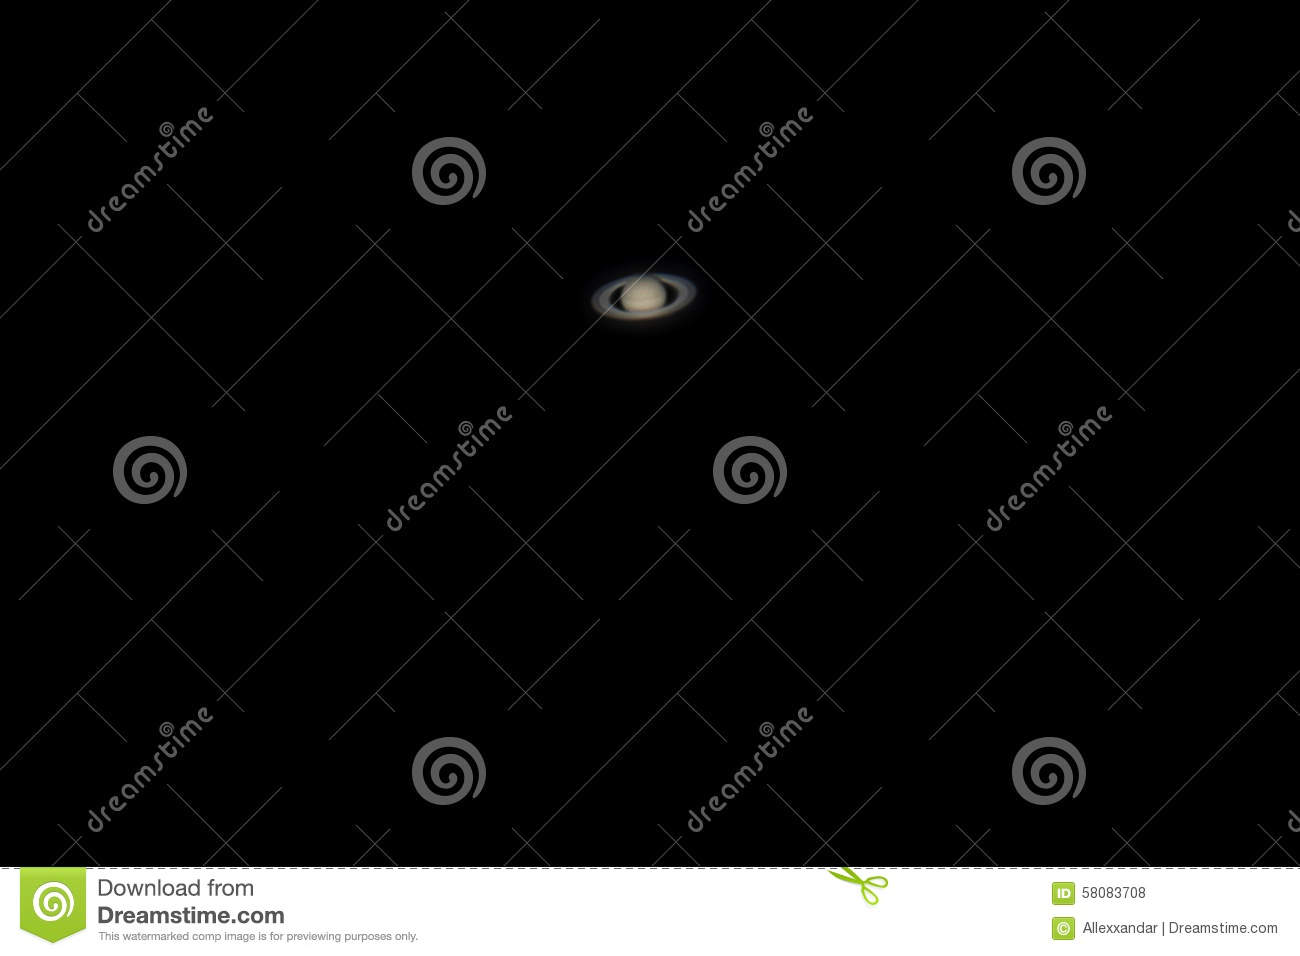 real photo of saturn planet with telescope stock photo image of